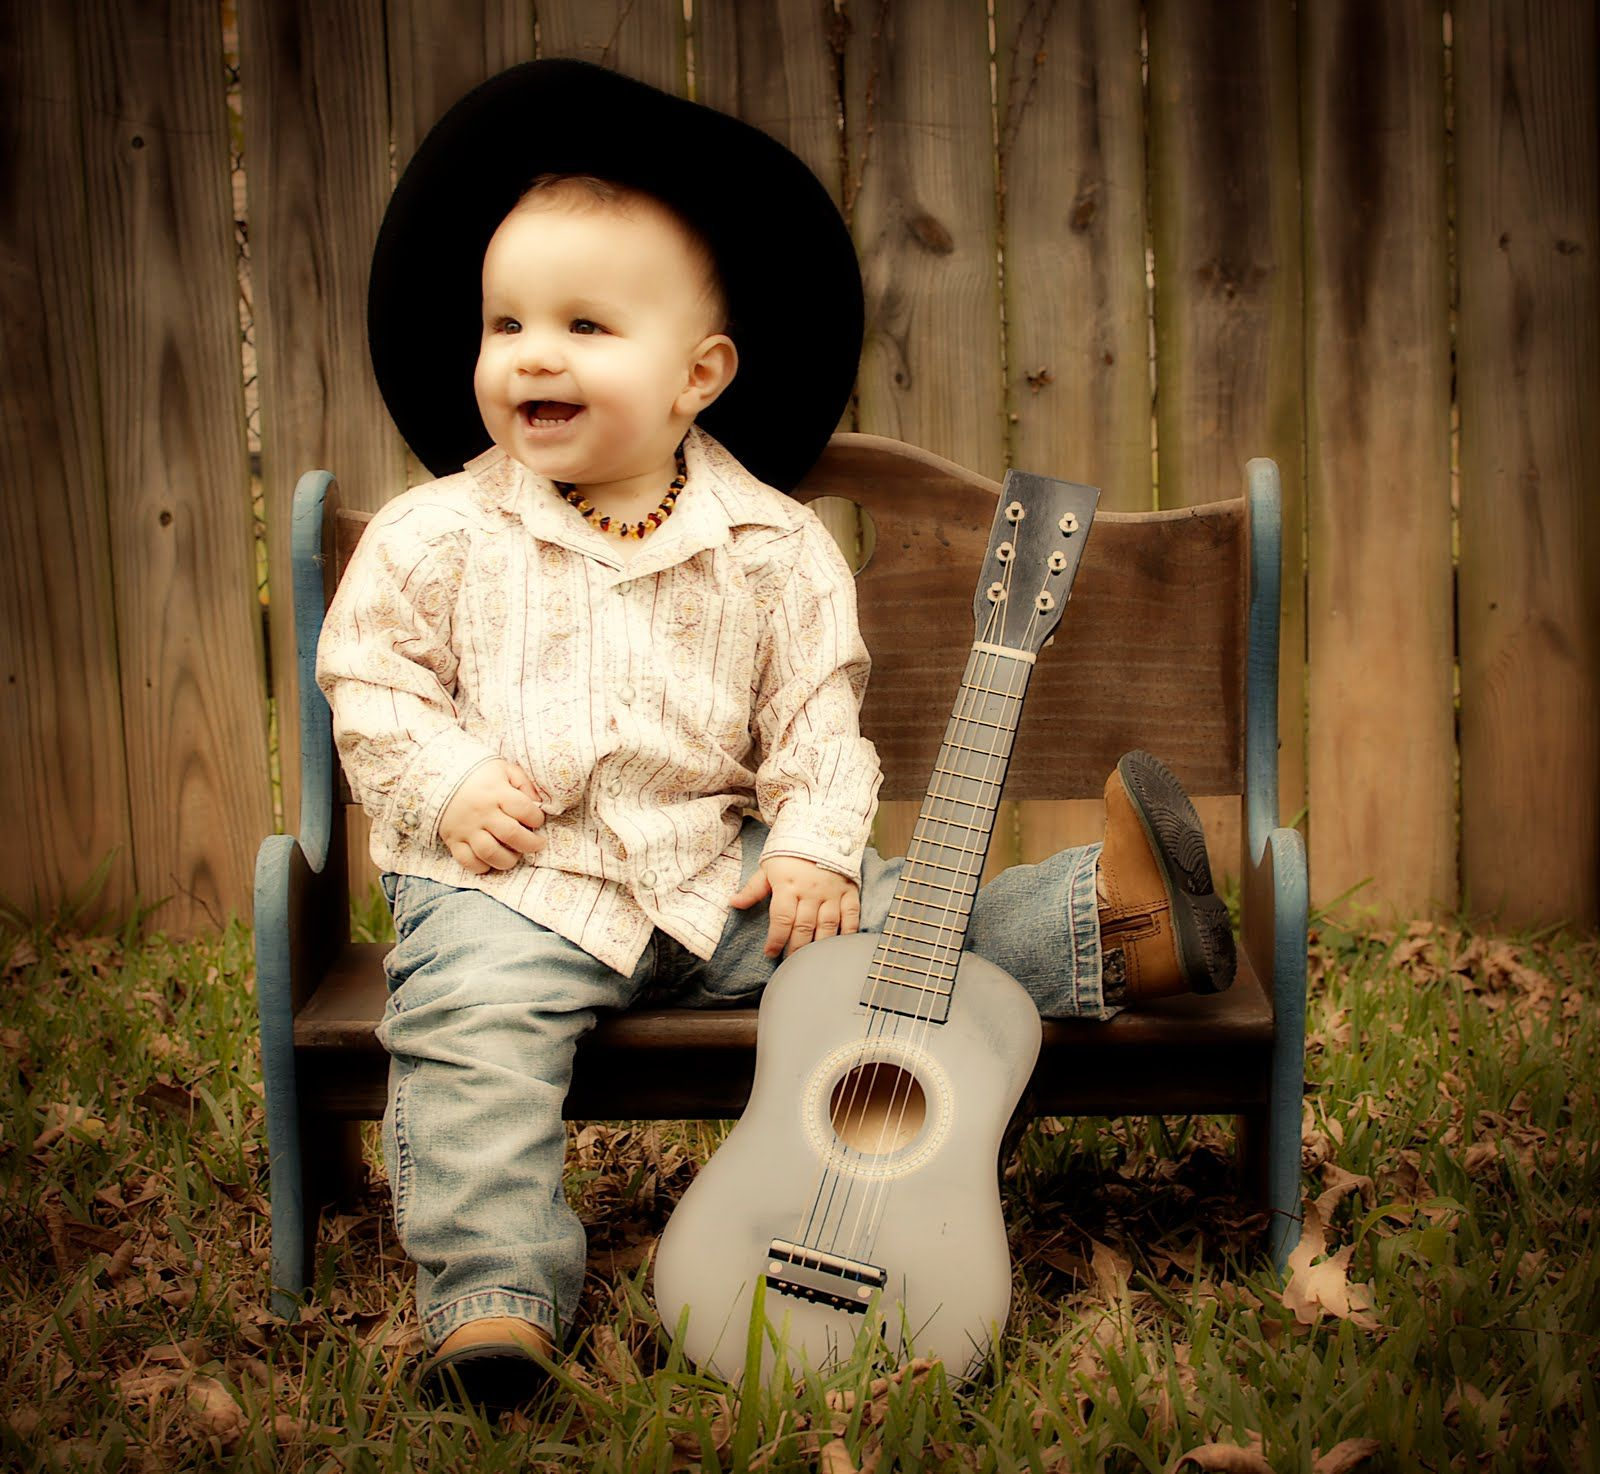 Image result for baby with guitar